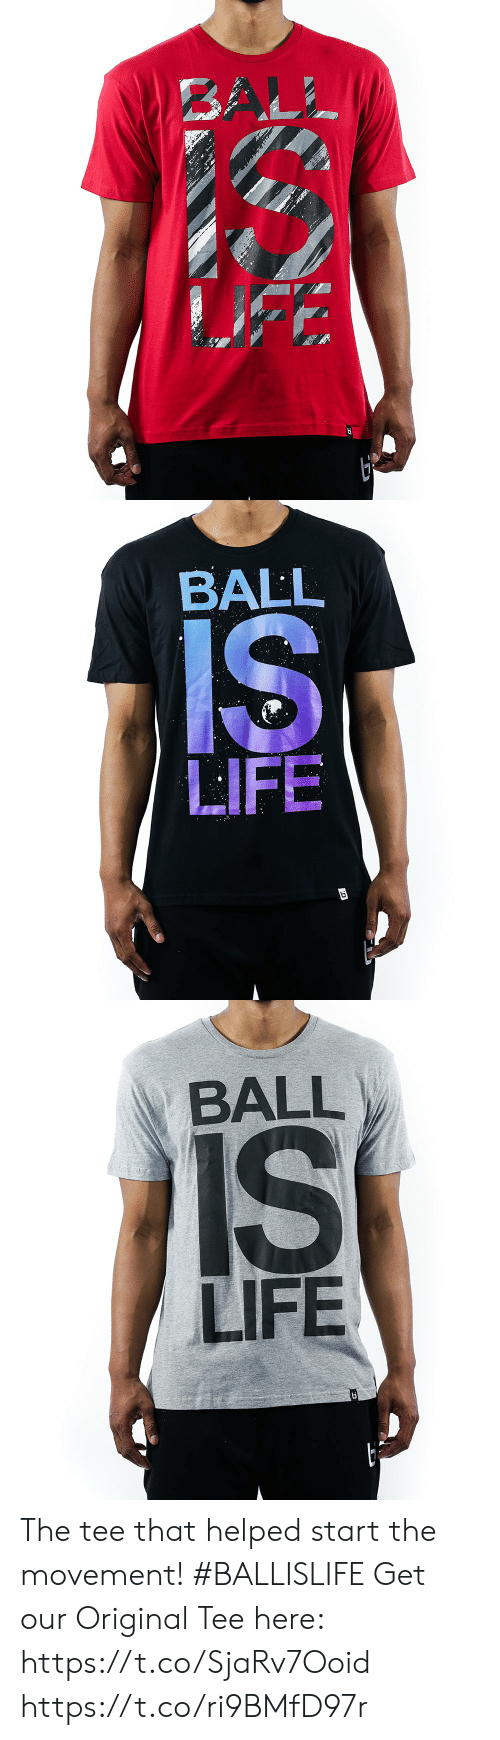 life ball: BALL  LIFE   BALL  LIFE   BALL  LIFE The tee that helped start the movement! #BALLISLIFE  Get our Original Tee here: https://t.co/SjaRv7Ooid https://t.co/ri9BMfD97r